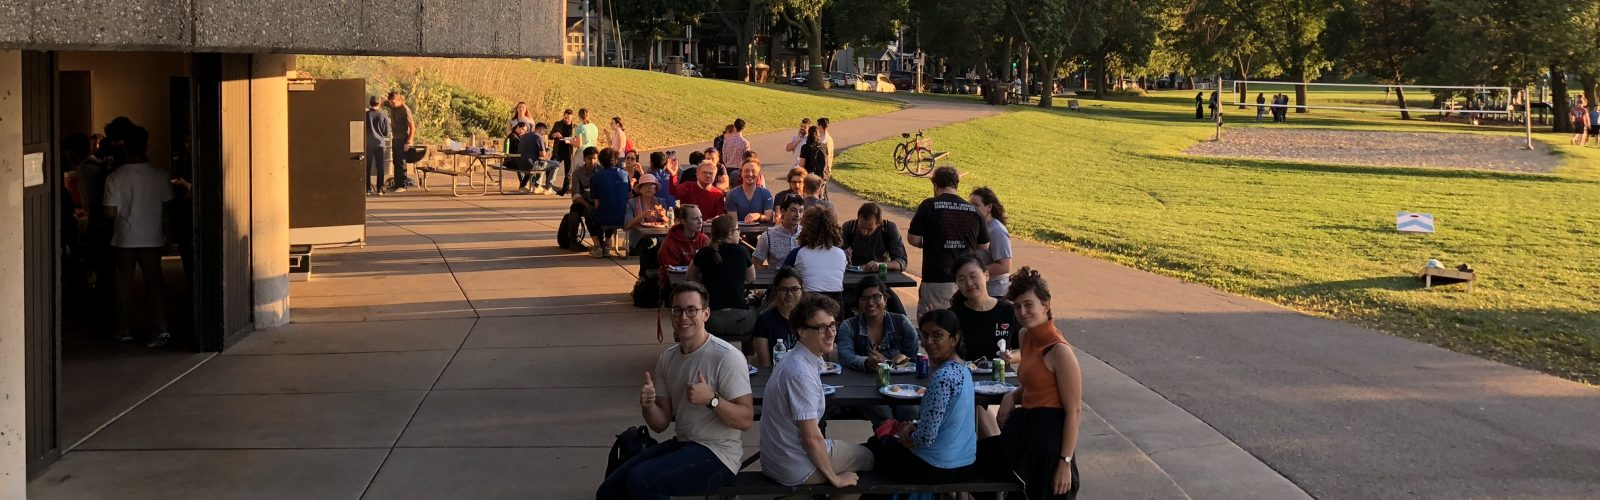 students in a park eating at tables